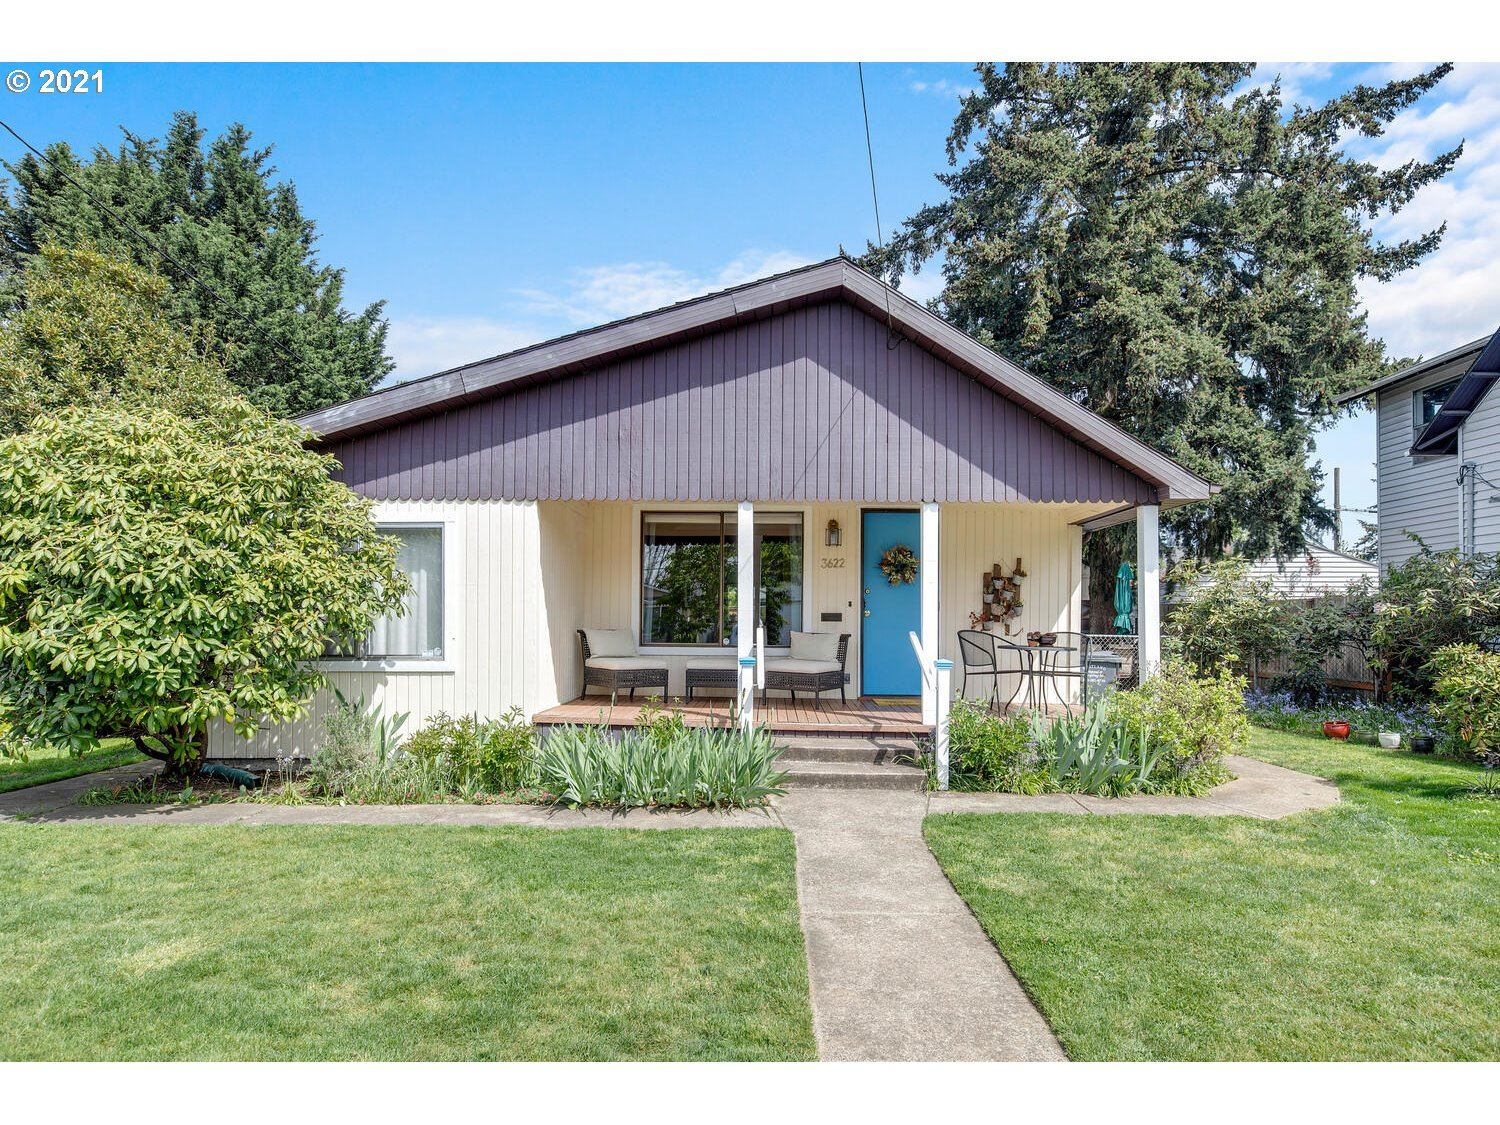 3622 SE 68TH AVE, Portland, OR 97206 - MLS#: 21225478